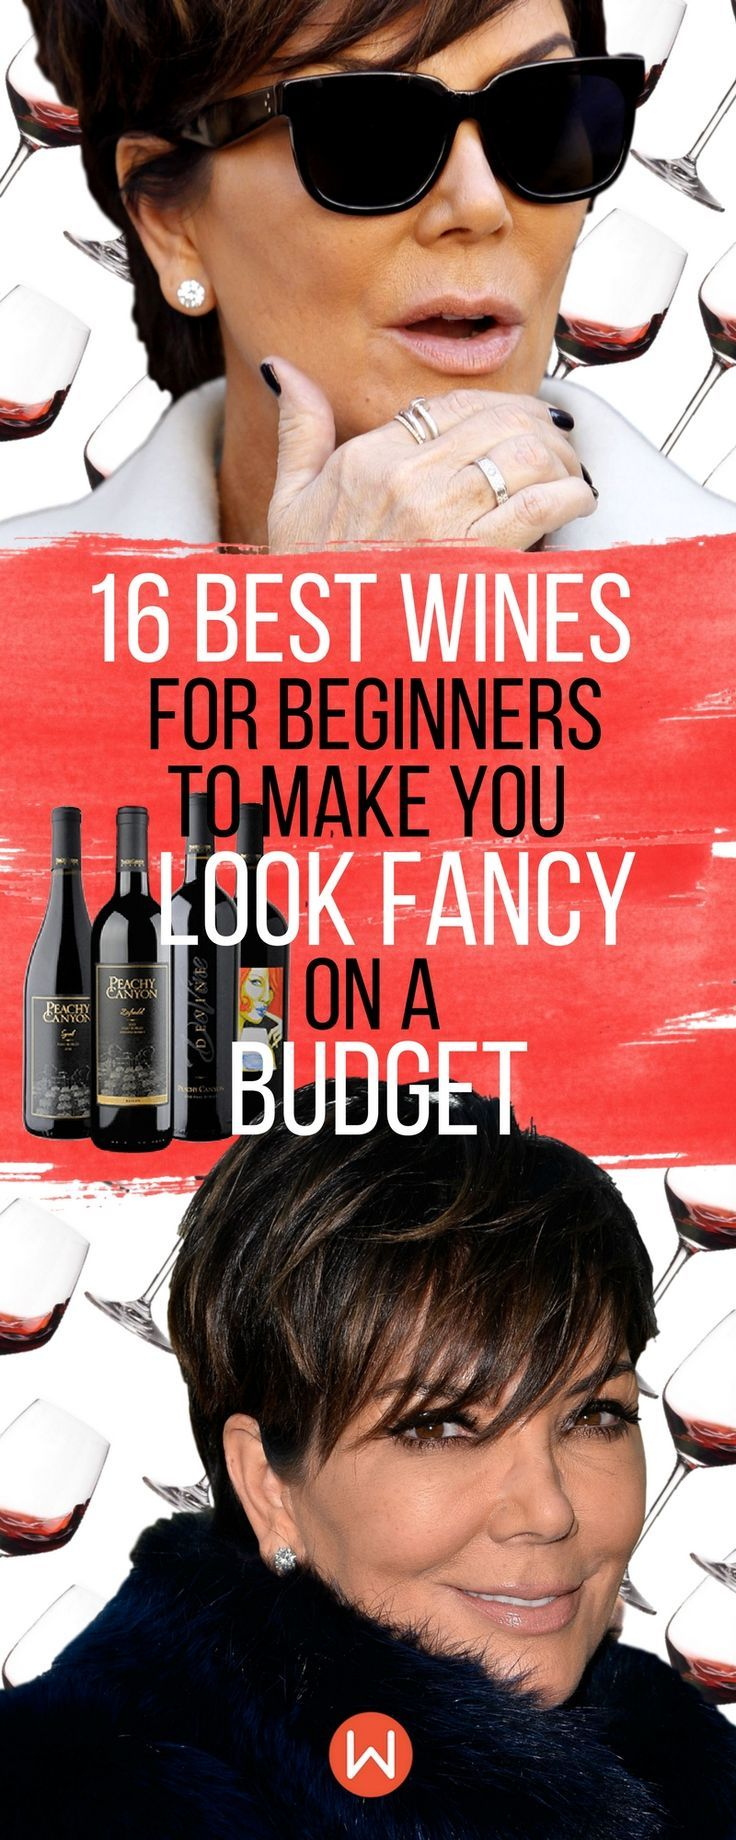 16 Best Wines For Beginners To Make You Look Fancy On A Budget Red Wine For Beginners Wine Basics Wines